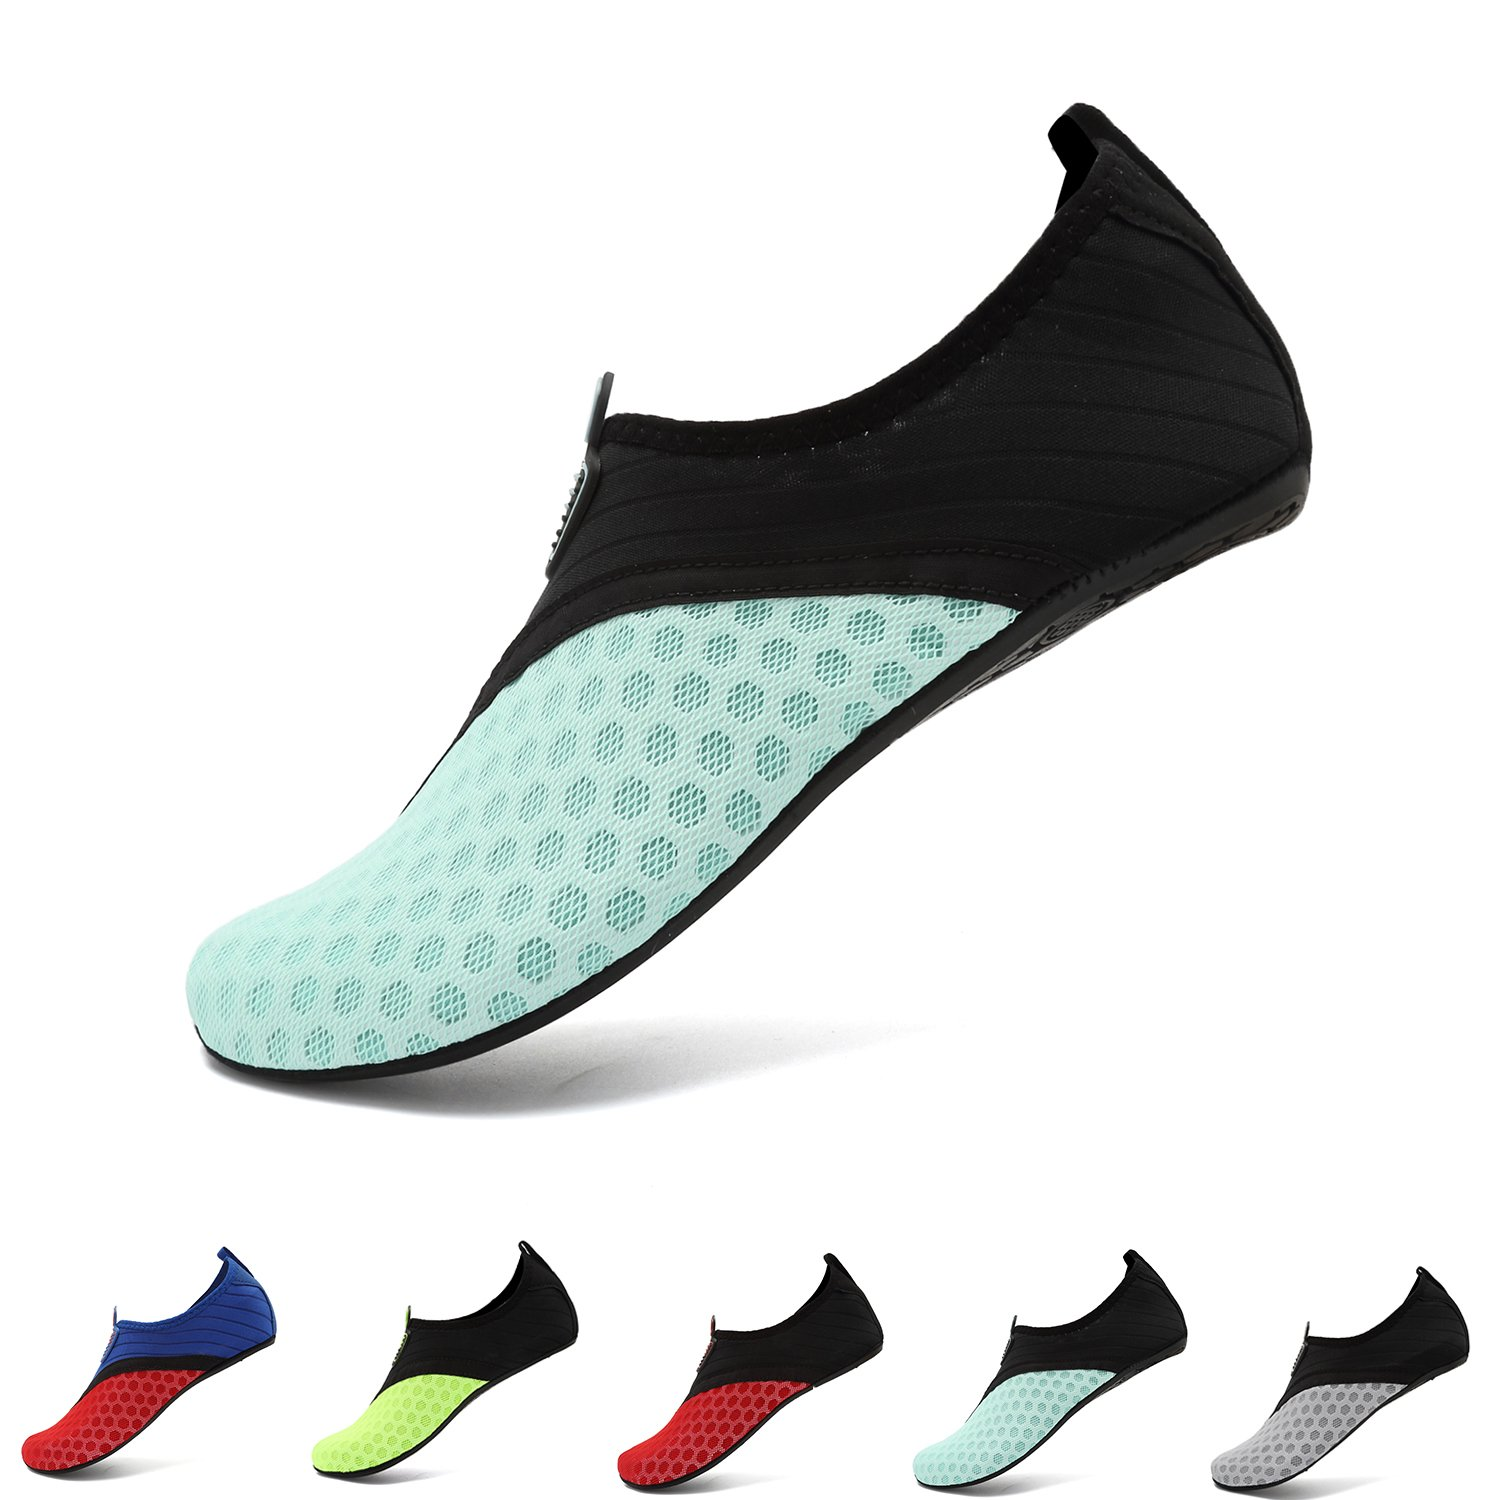 Water Sports Shoes Barefoot Quick-Dry Aqua Beach Swim Exercise Yoga Socks Slip-On for Men and Women Blue Black 36/37